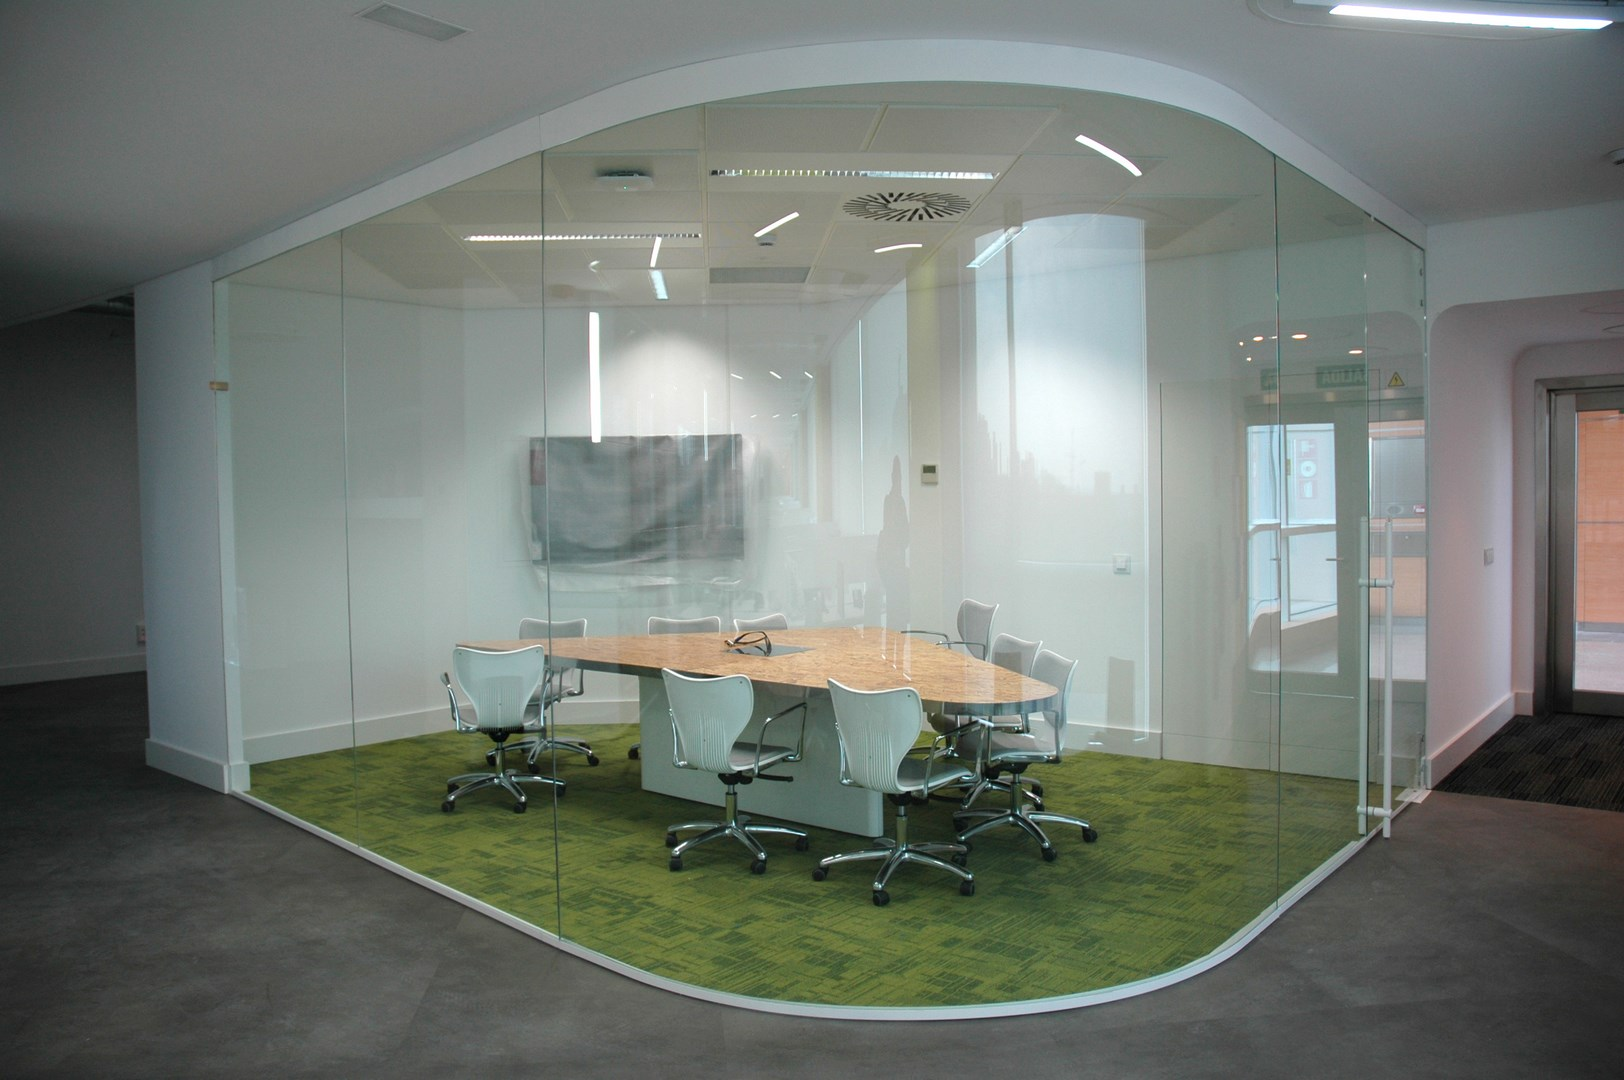 Offices, meeting room